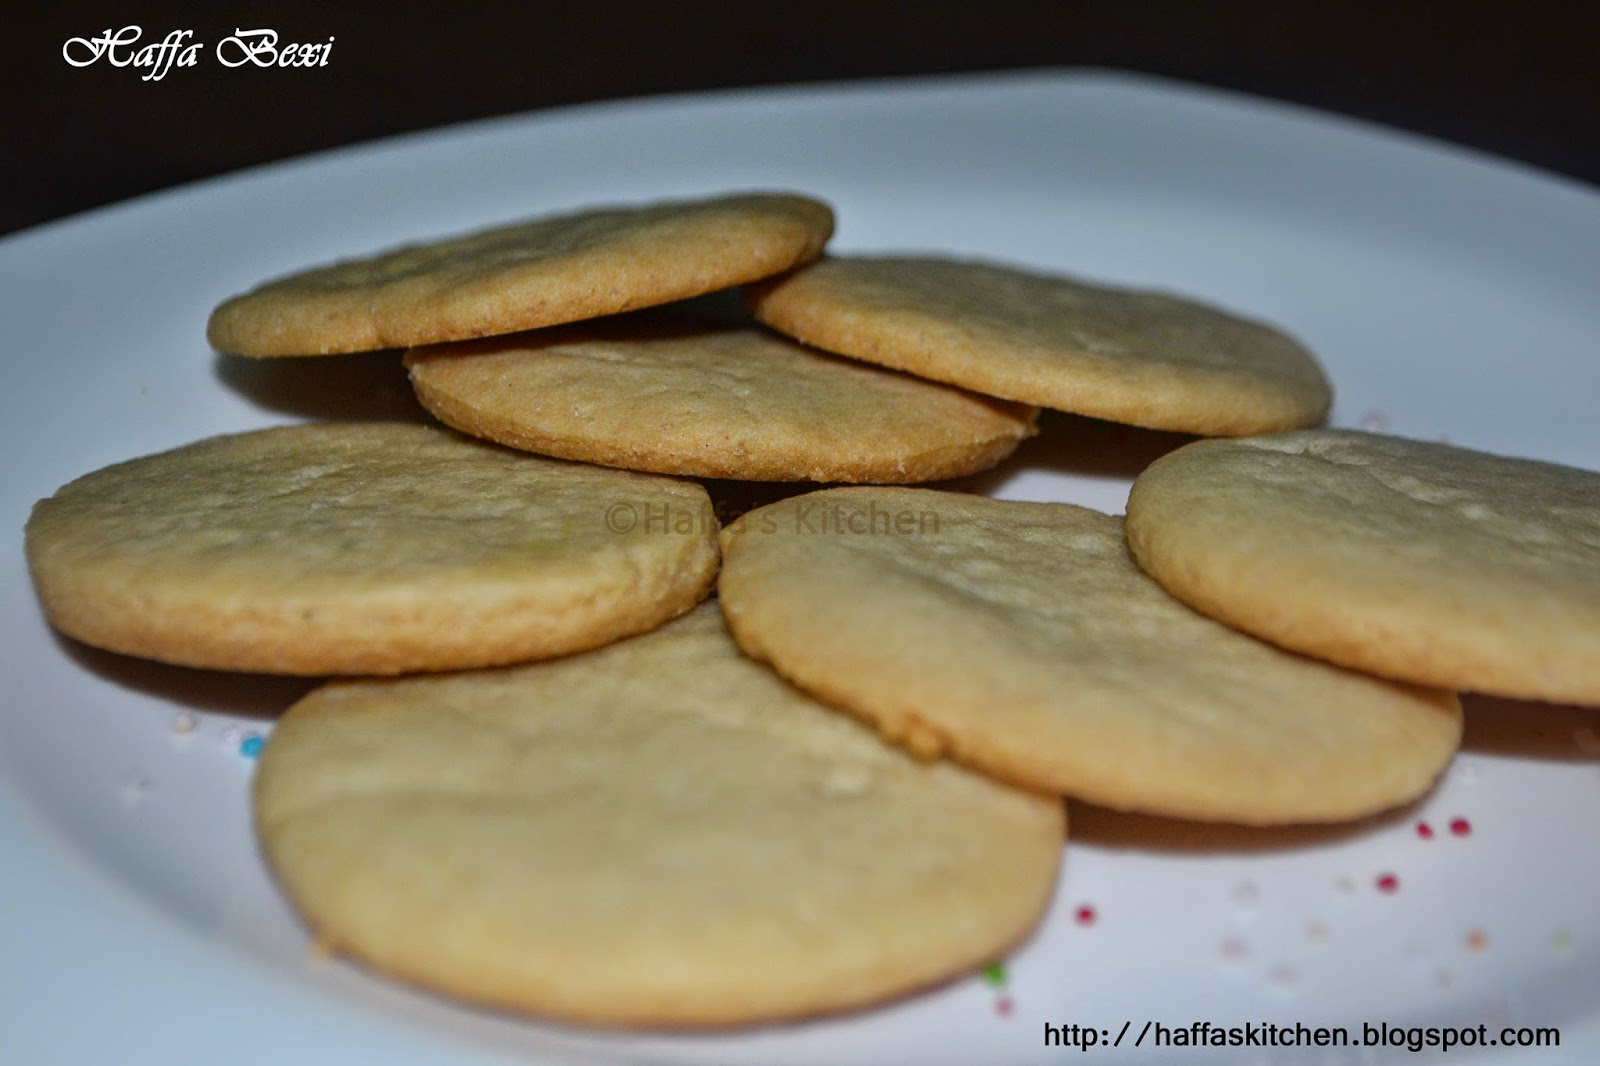 Baking| Kids recipes| Butter cookies| Snacks ideas| butter cookies recipe| butter cookie recipe| recipe for butter cookies| how to make butter cookies| easy butter cookies